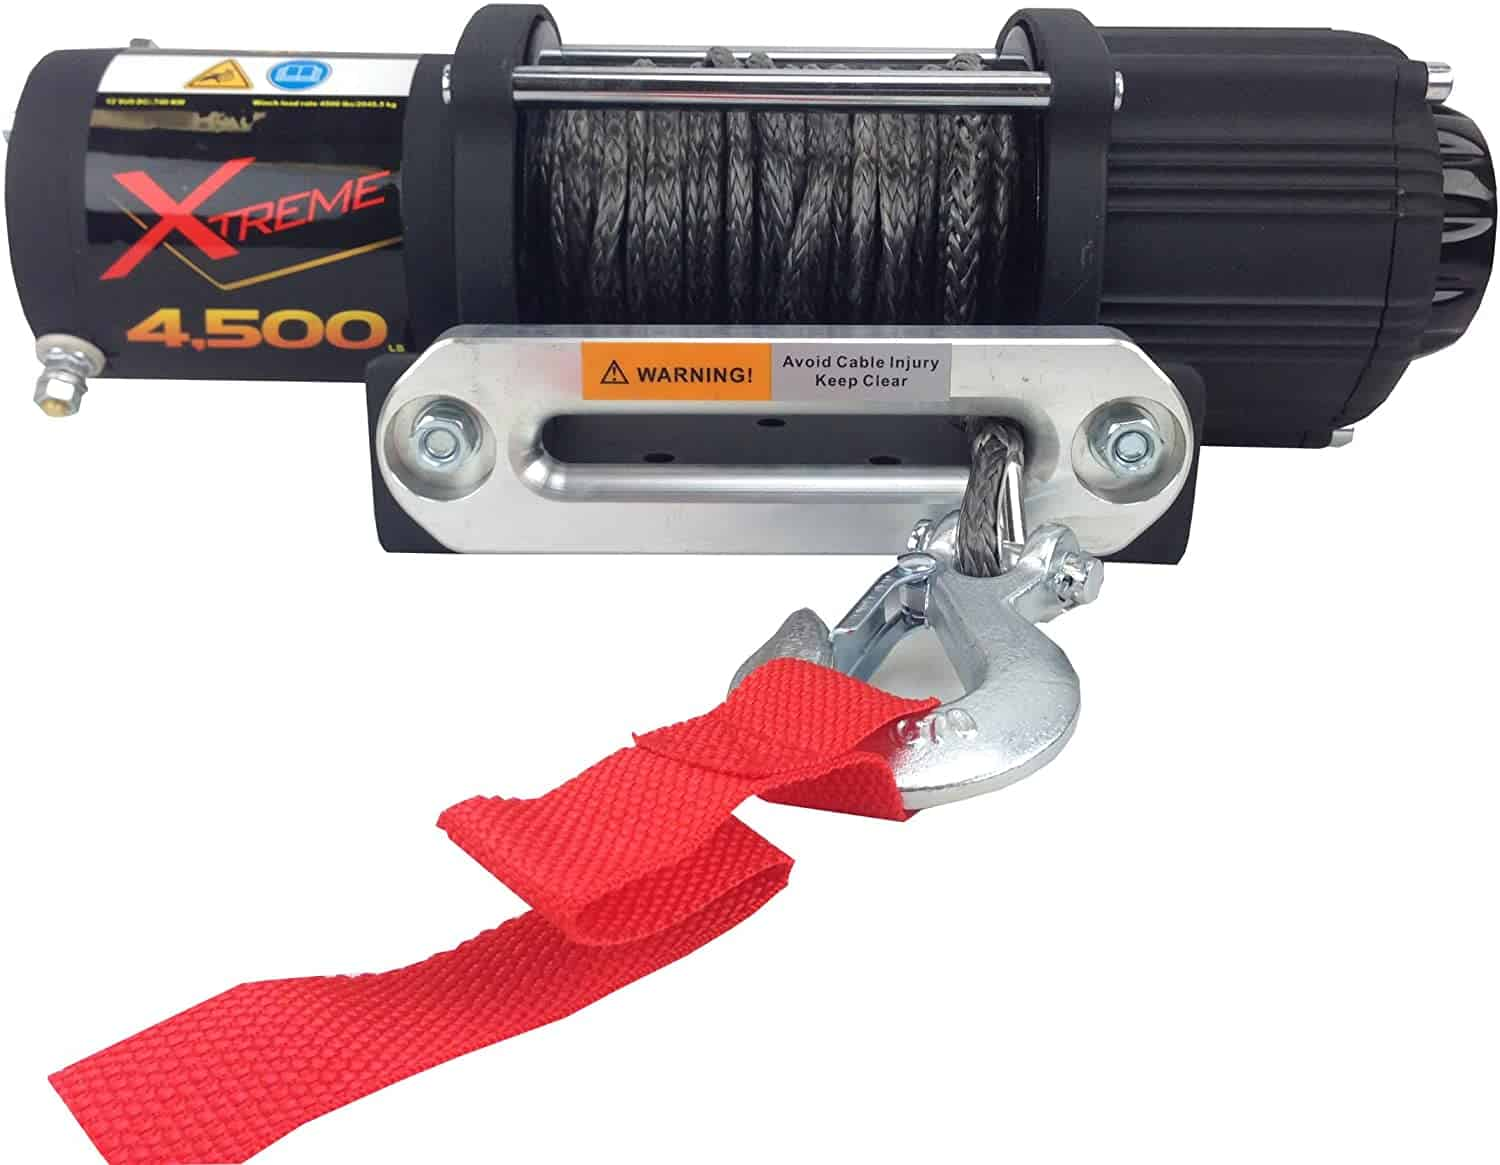 Tuff Stuff Winch Reviews In 2020 Buy Or Not